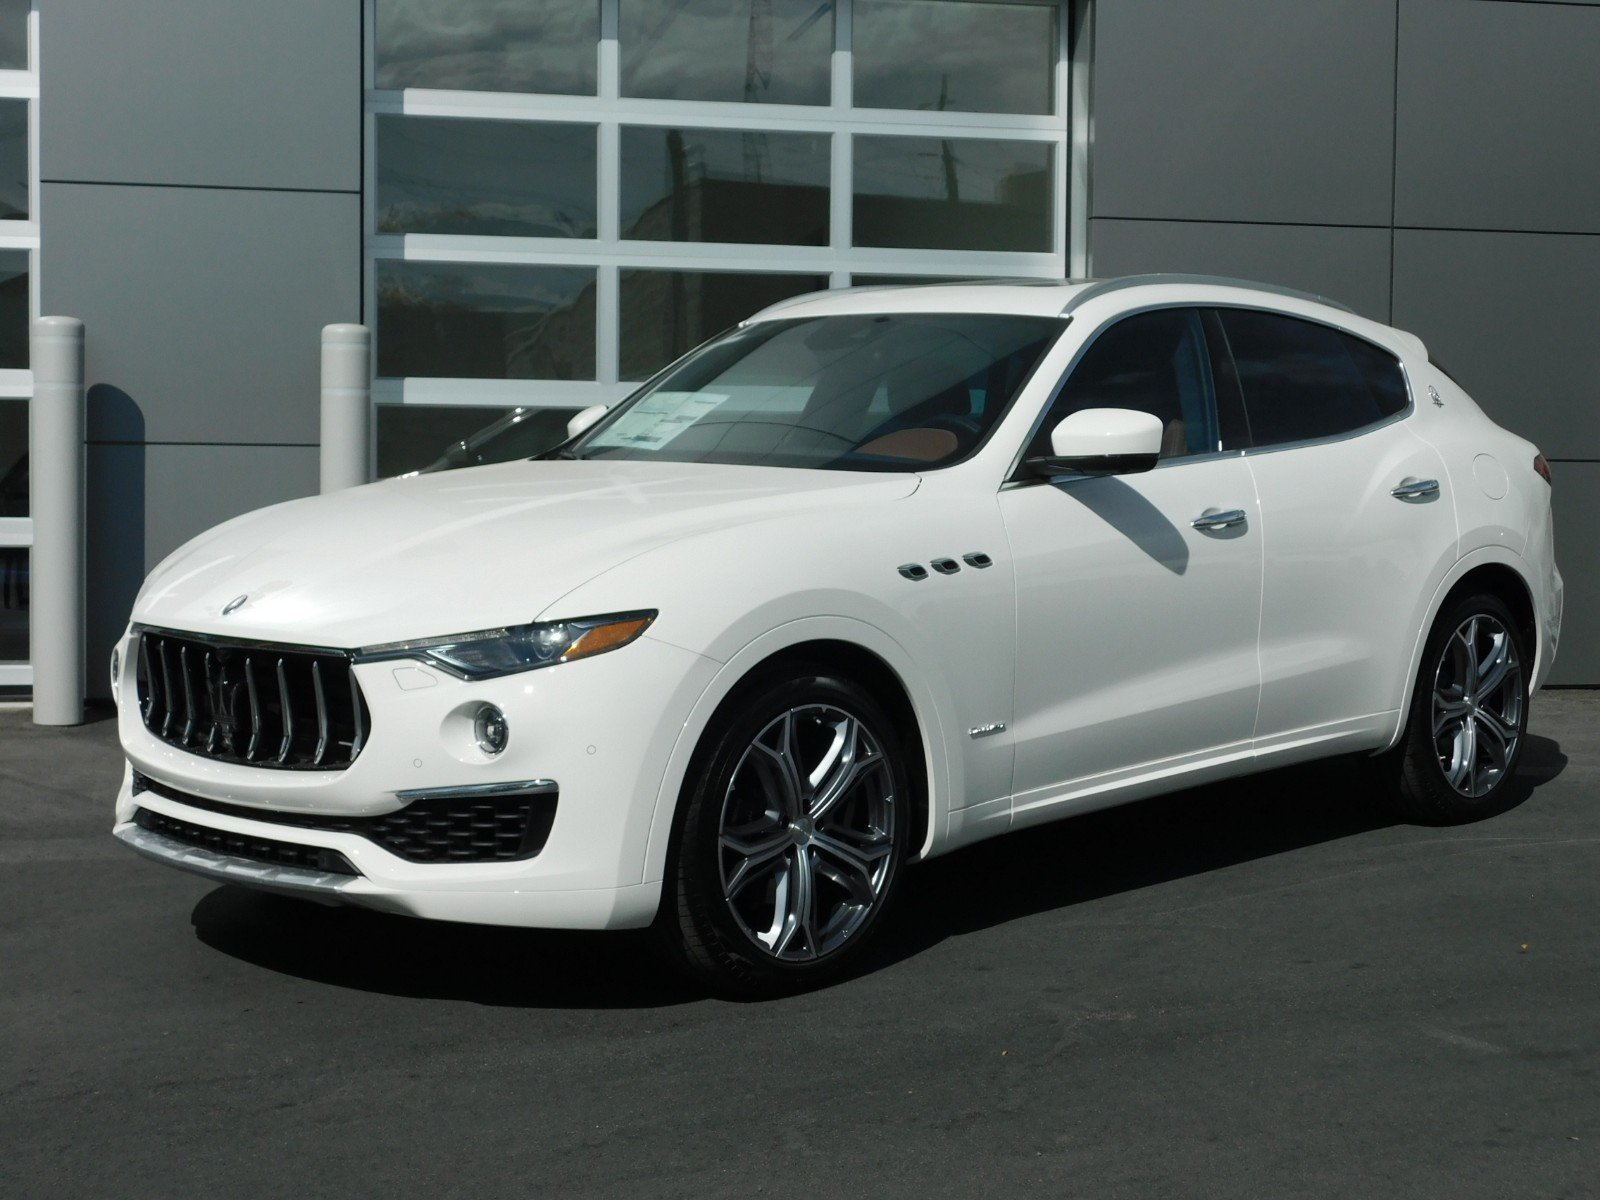 New 2019 Maserati Levante GranLusso Sport Utility in Salt Lake City